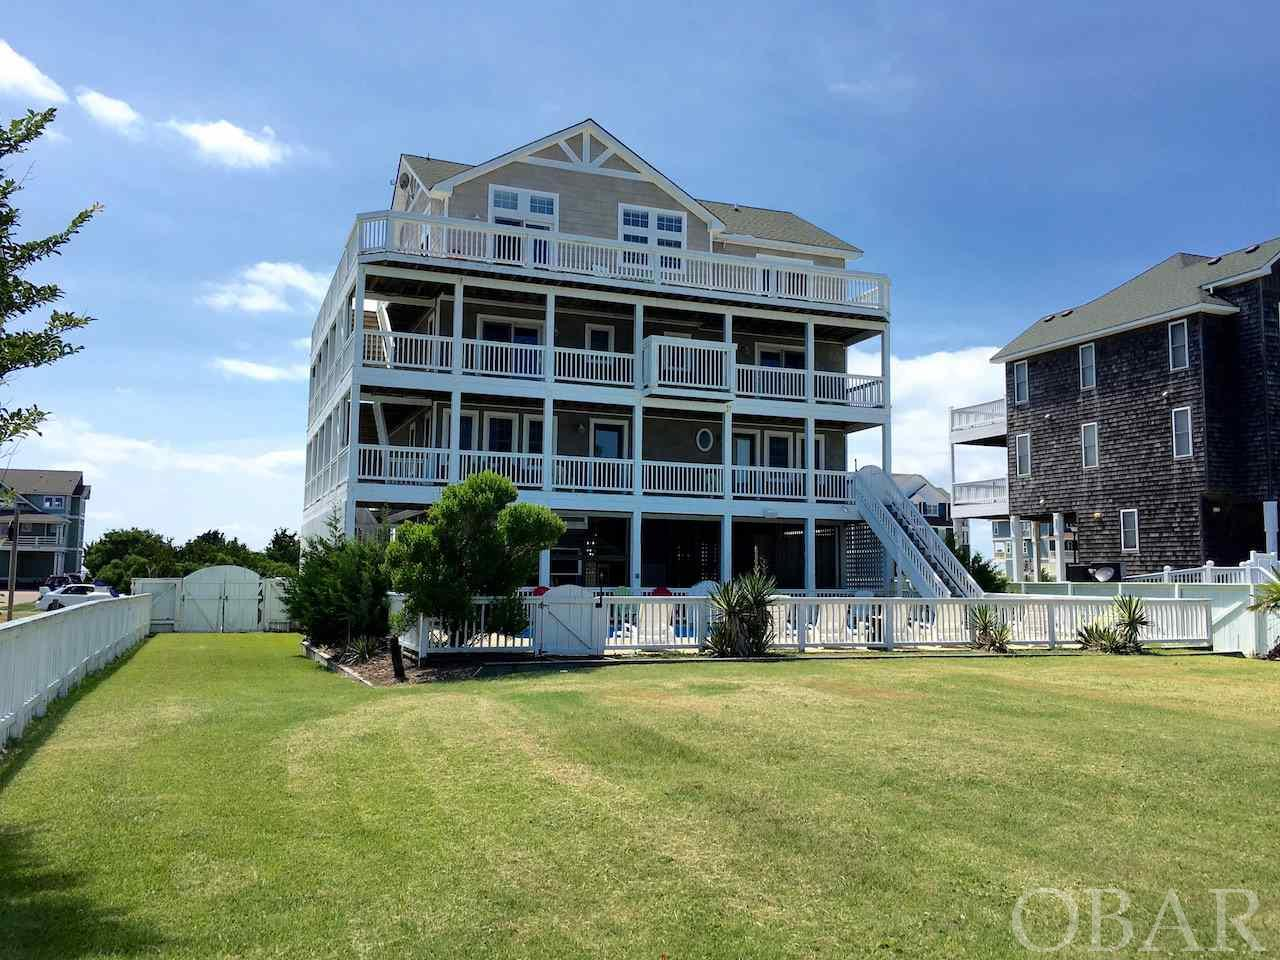 26151 Otter Way,Salvo,NC 27972,7 Bedrooms Bedrooms,7 BathroomsBathrooms,Residential,Otter Way,96576